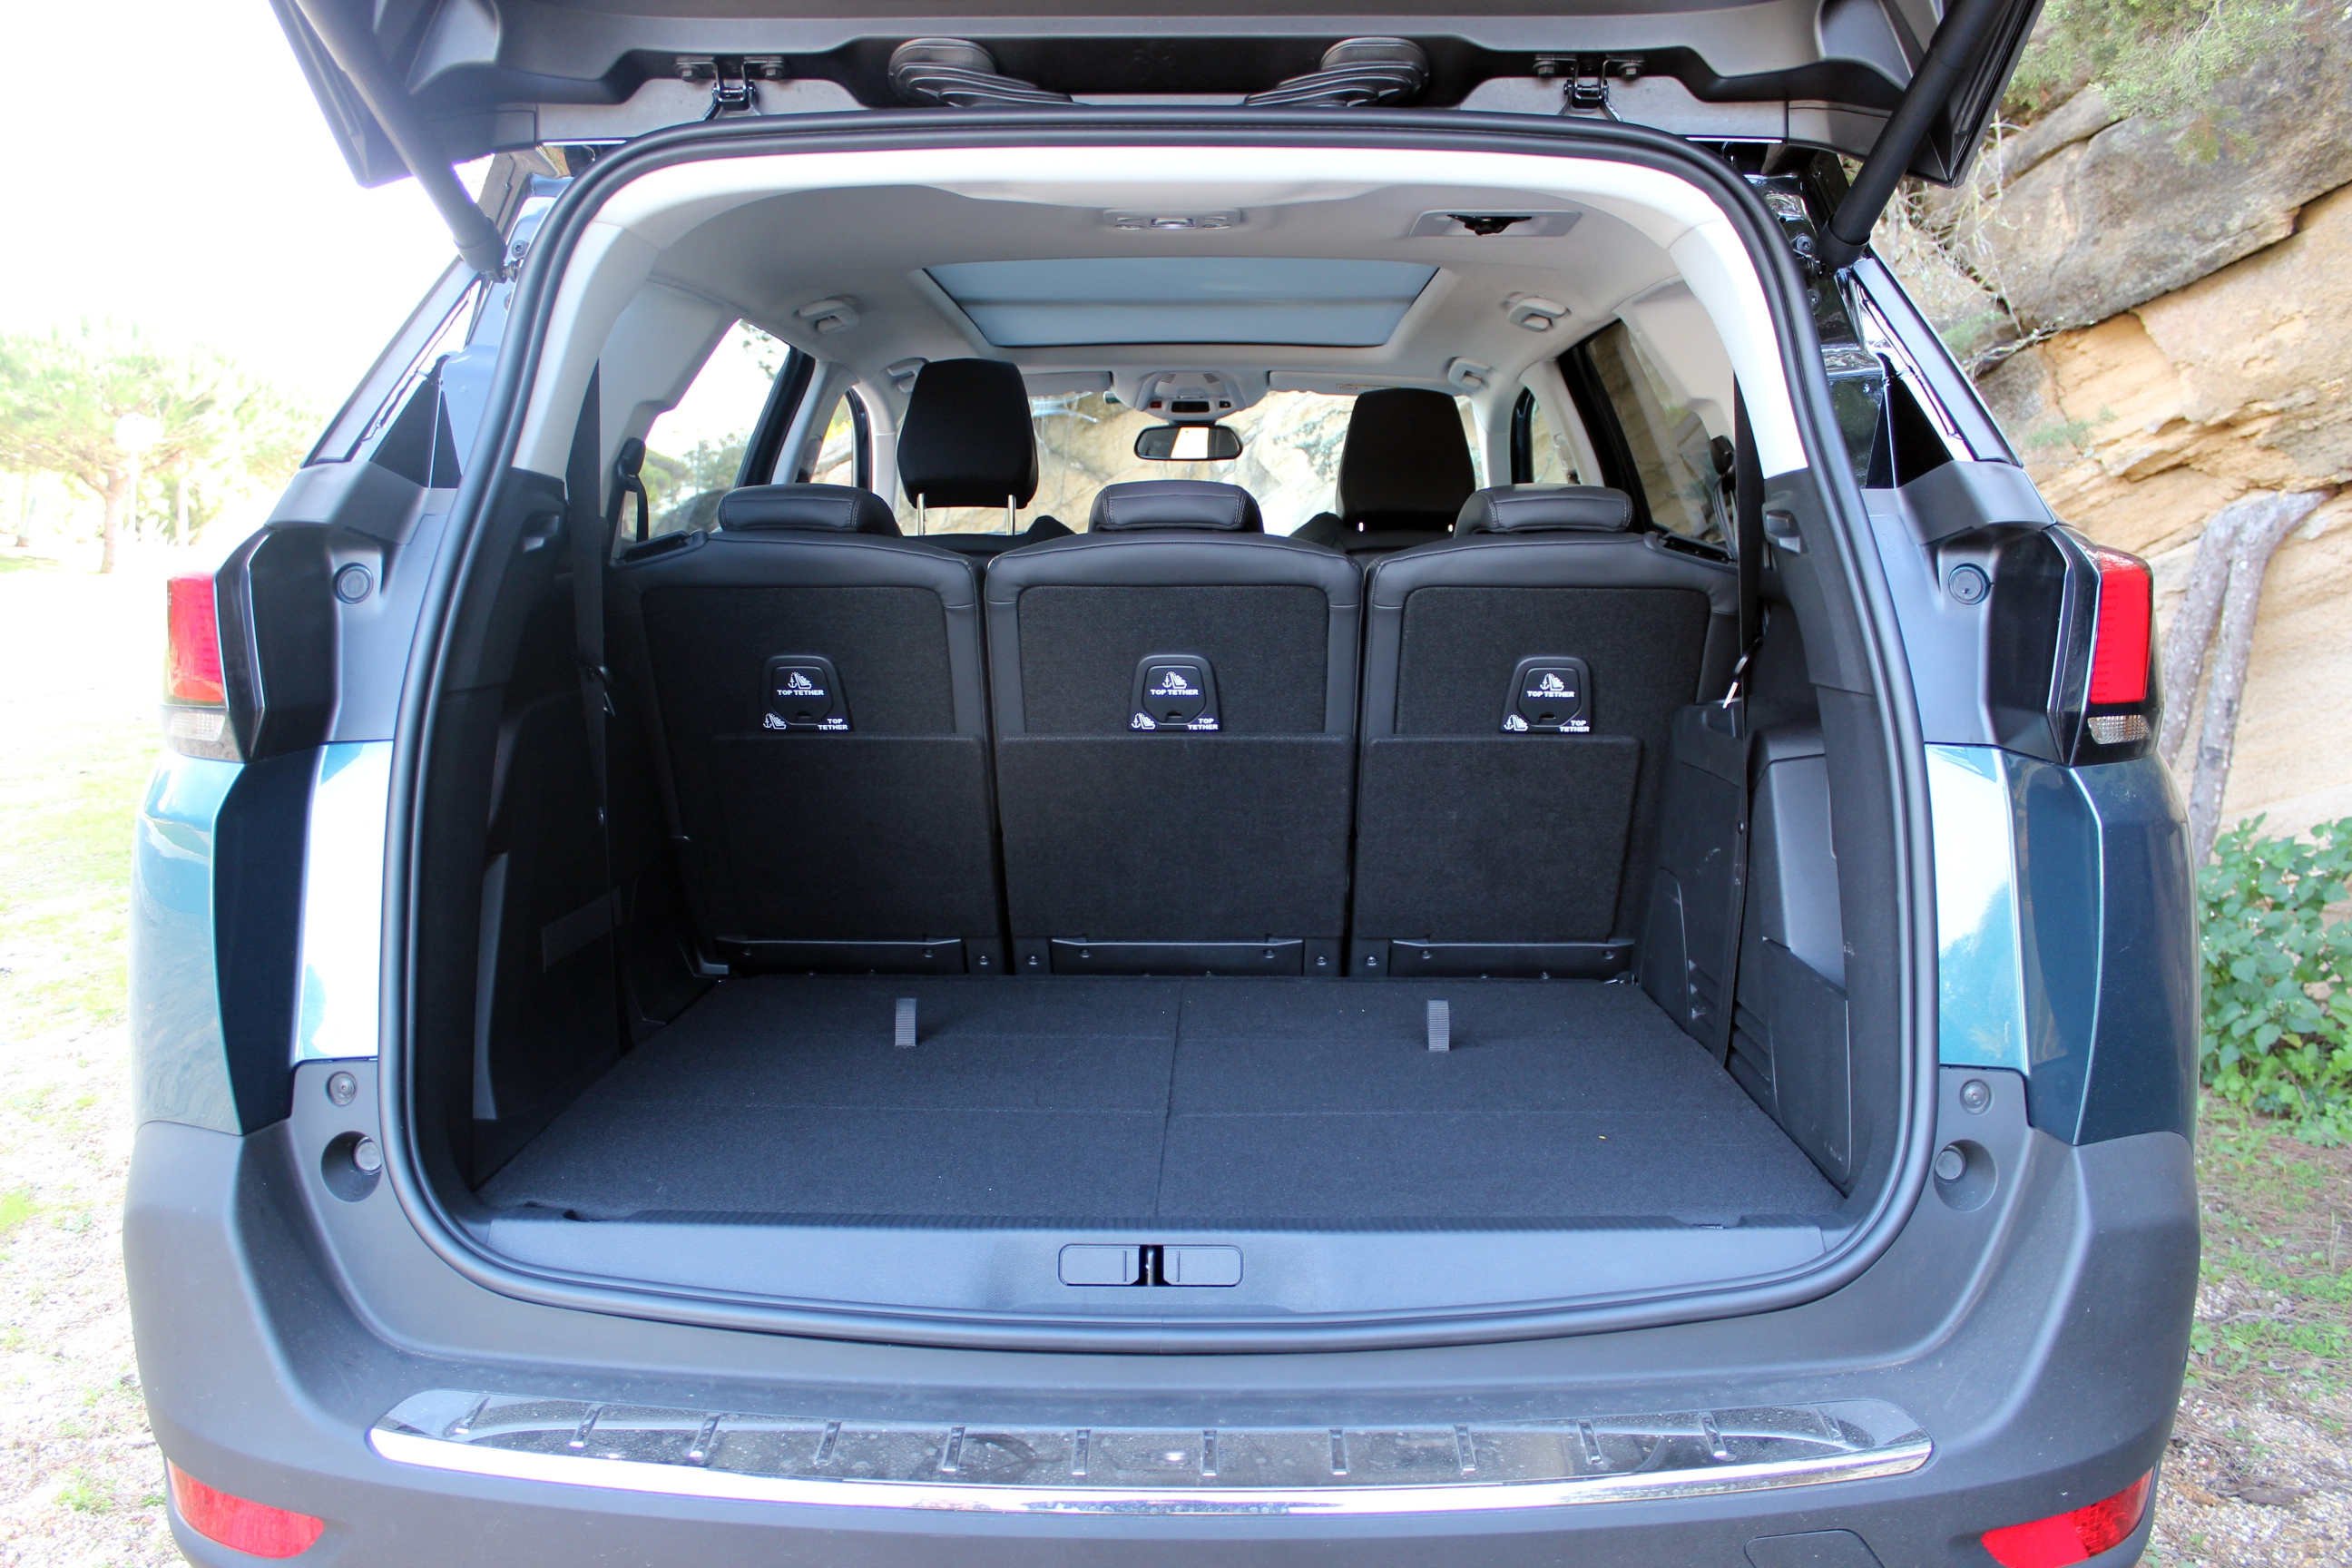 comparatif vid o nissan x trail vs peugeot 5008 une diff rence de calibre. Black Bedroom Furniture Sets. Home Design Ideas